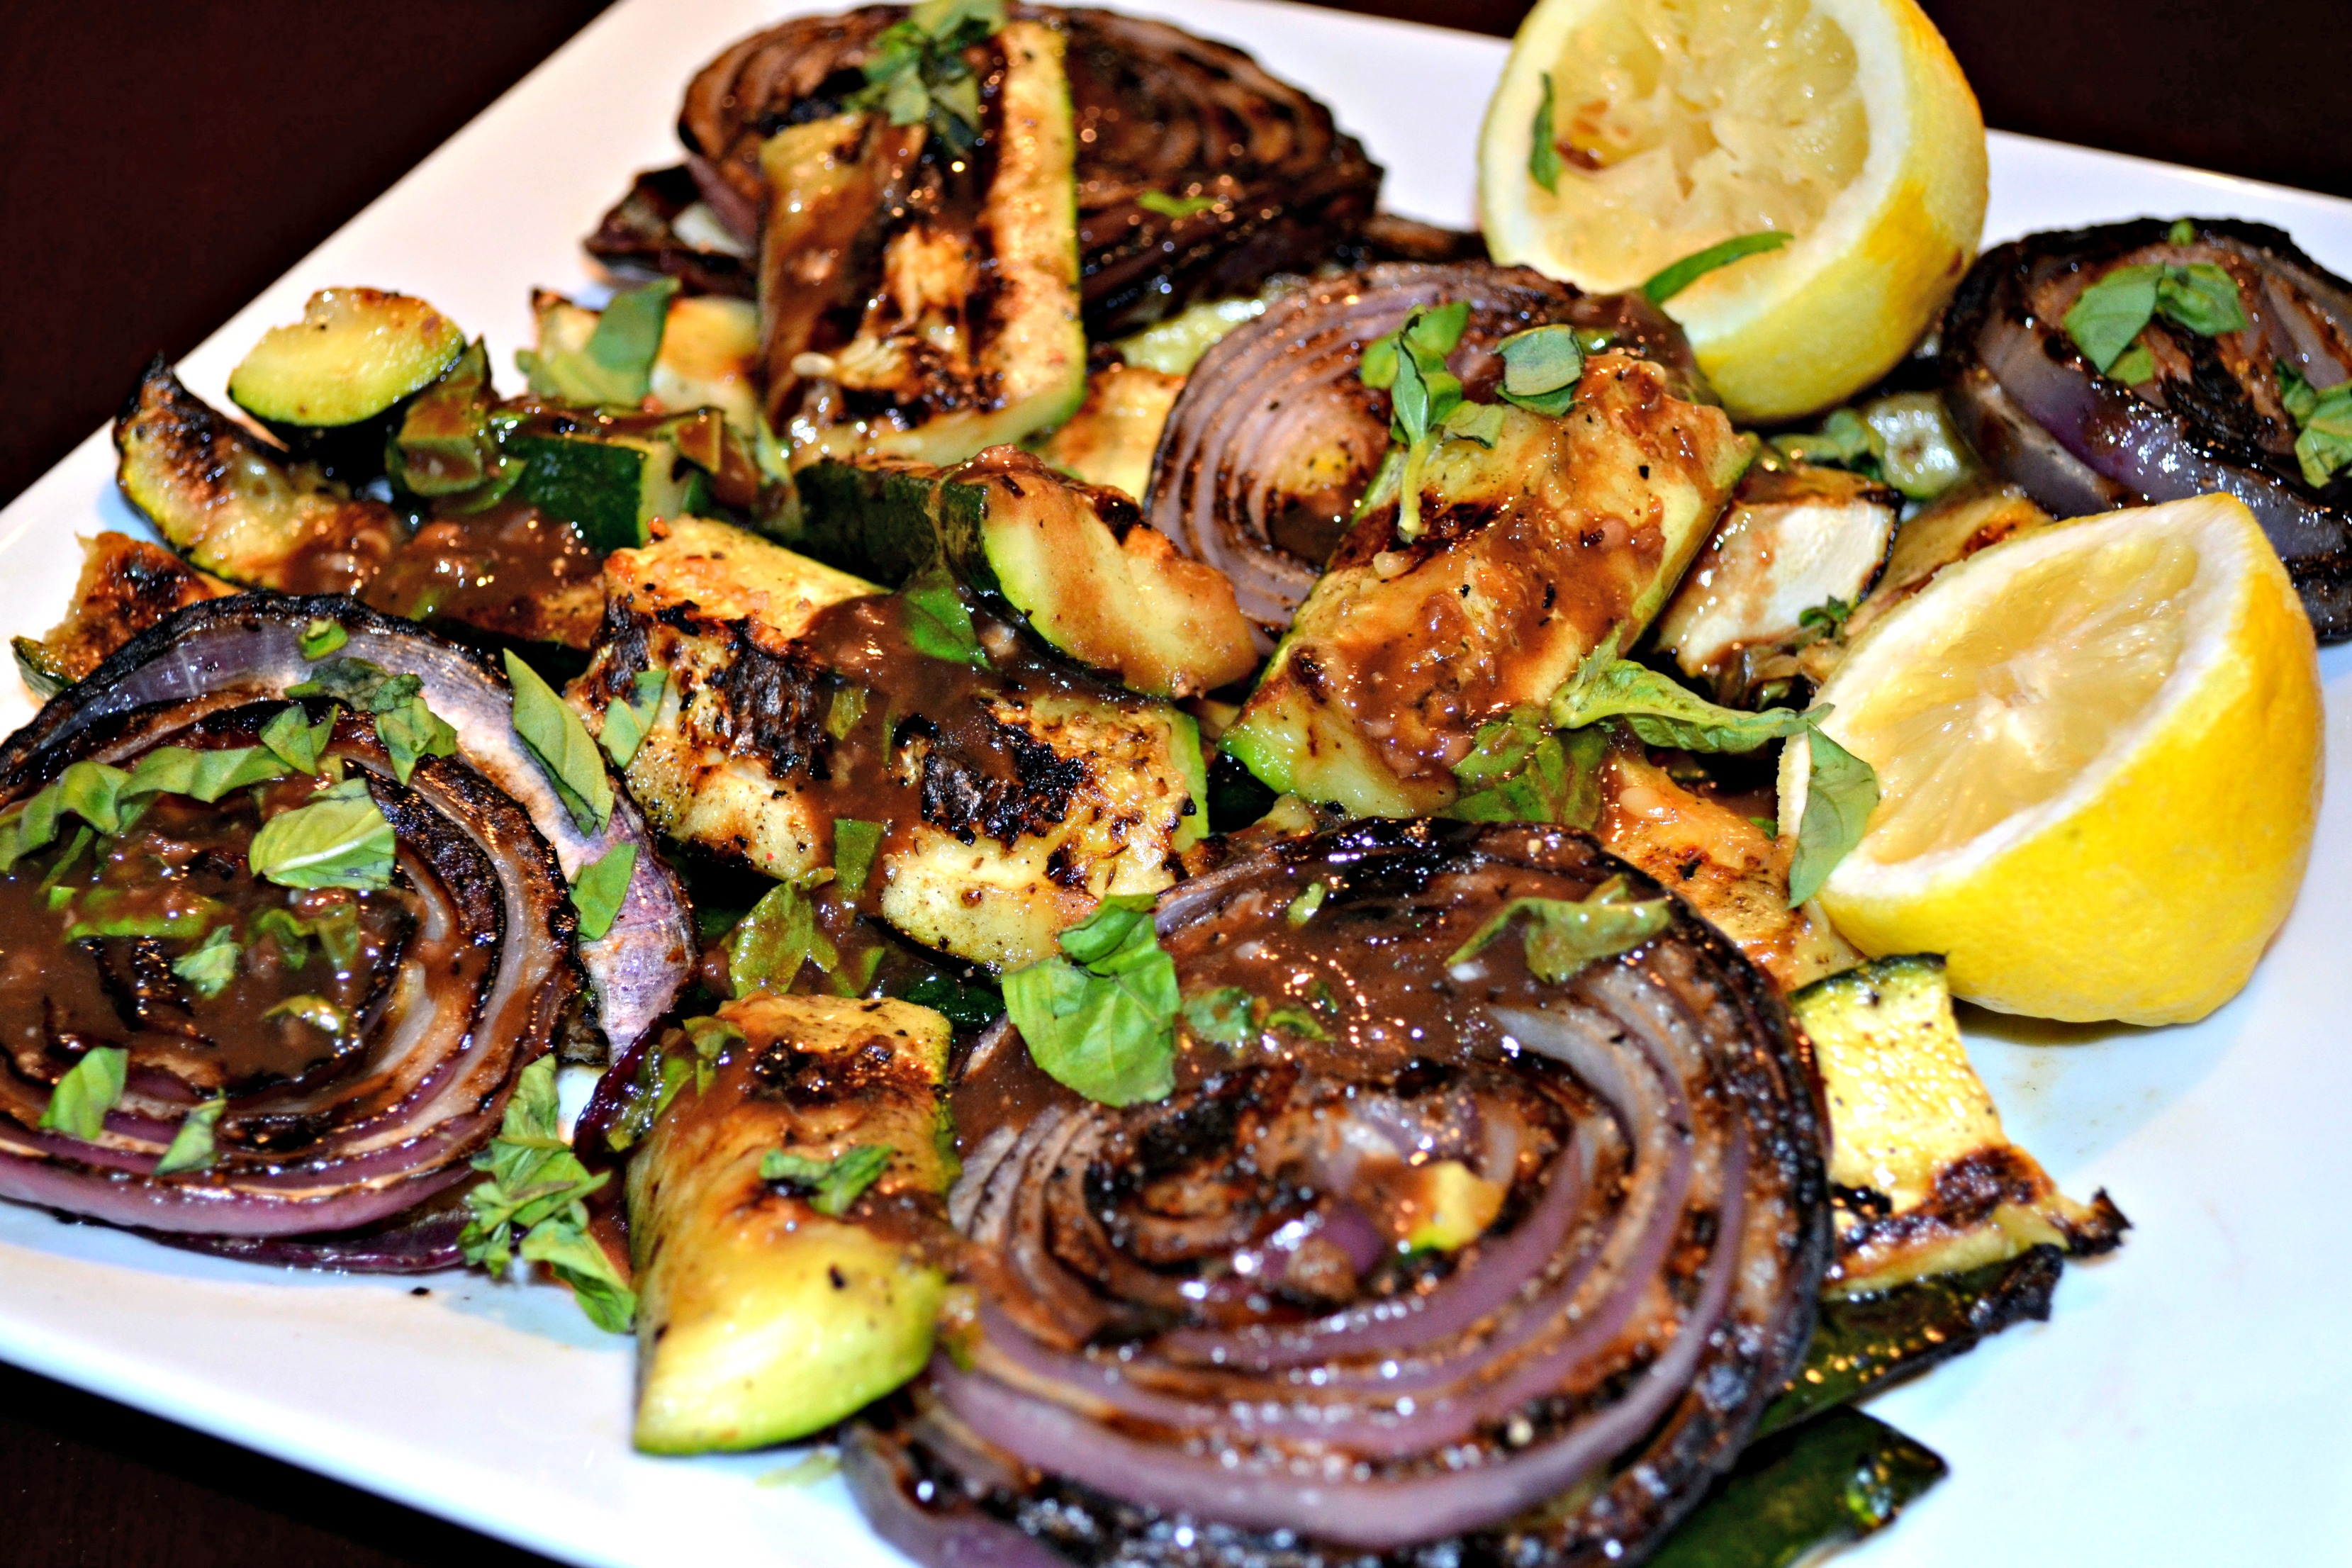 Grilled Zucchini and Red Onion Salad with a Smoked Balsamic ...